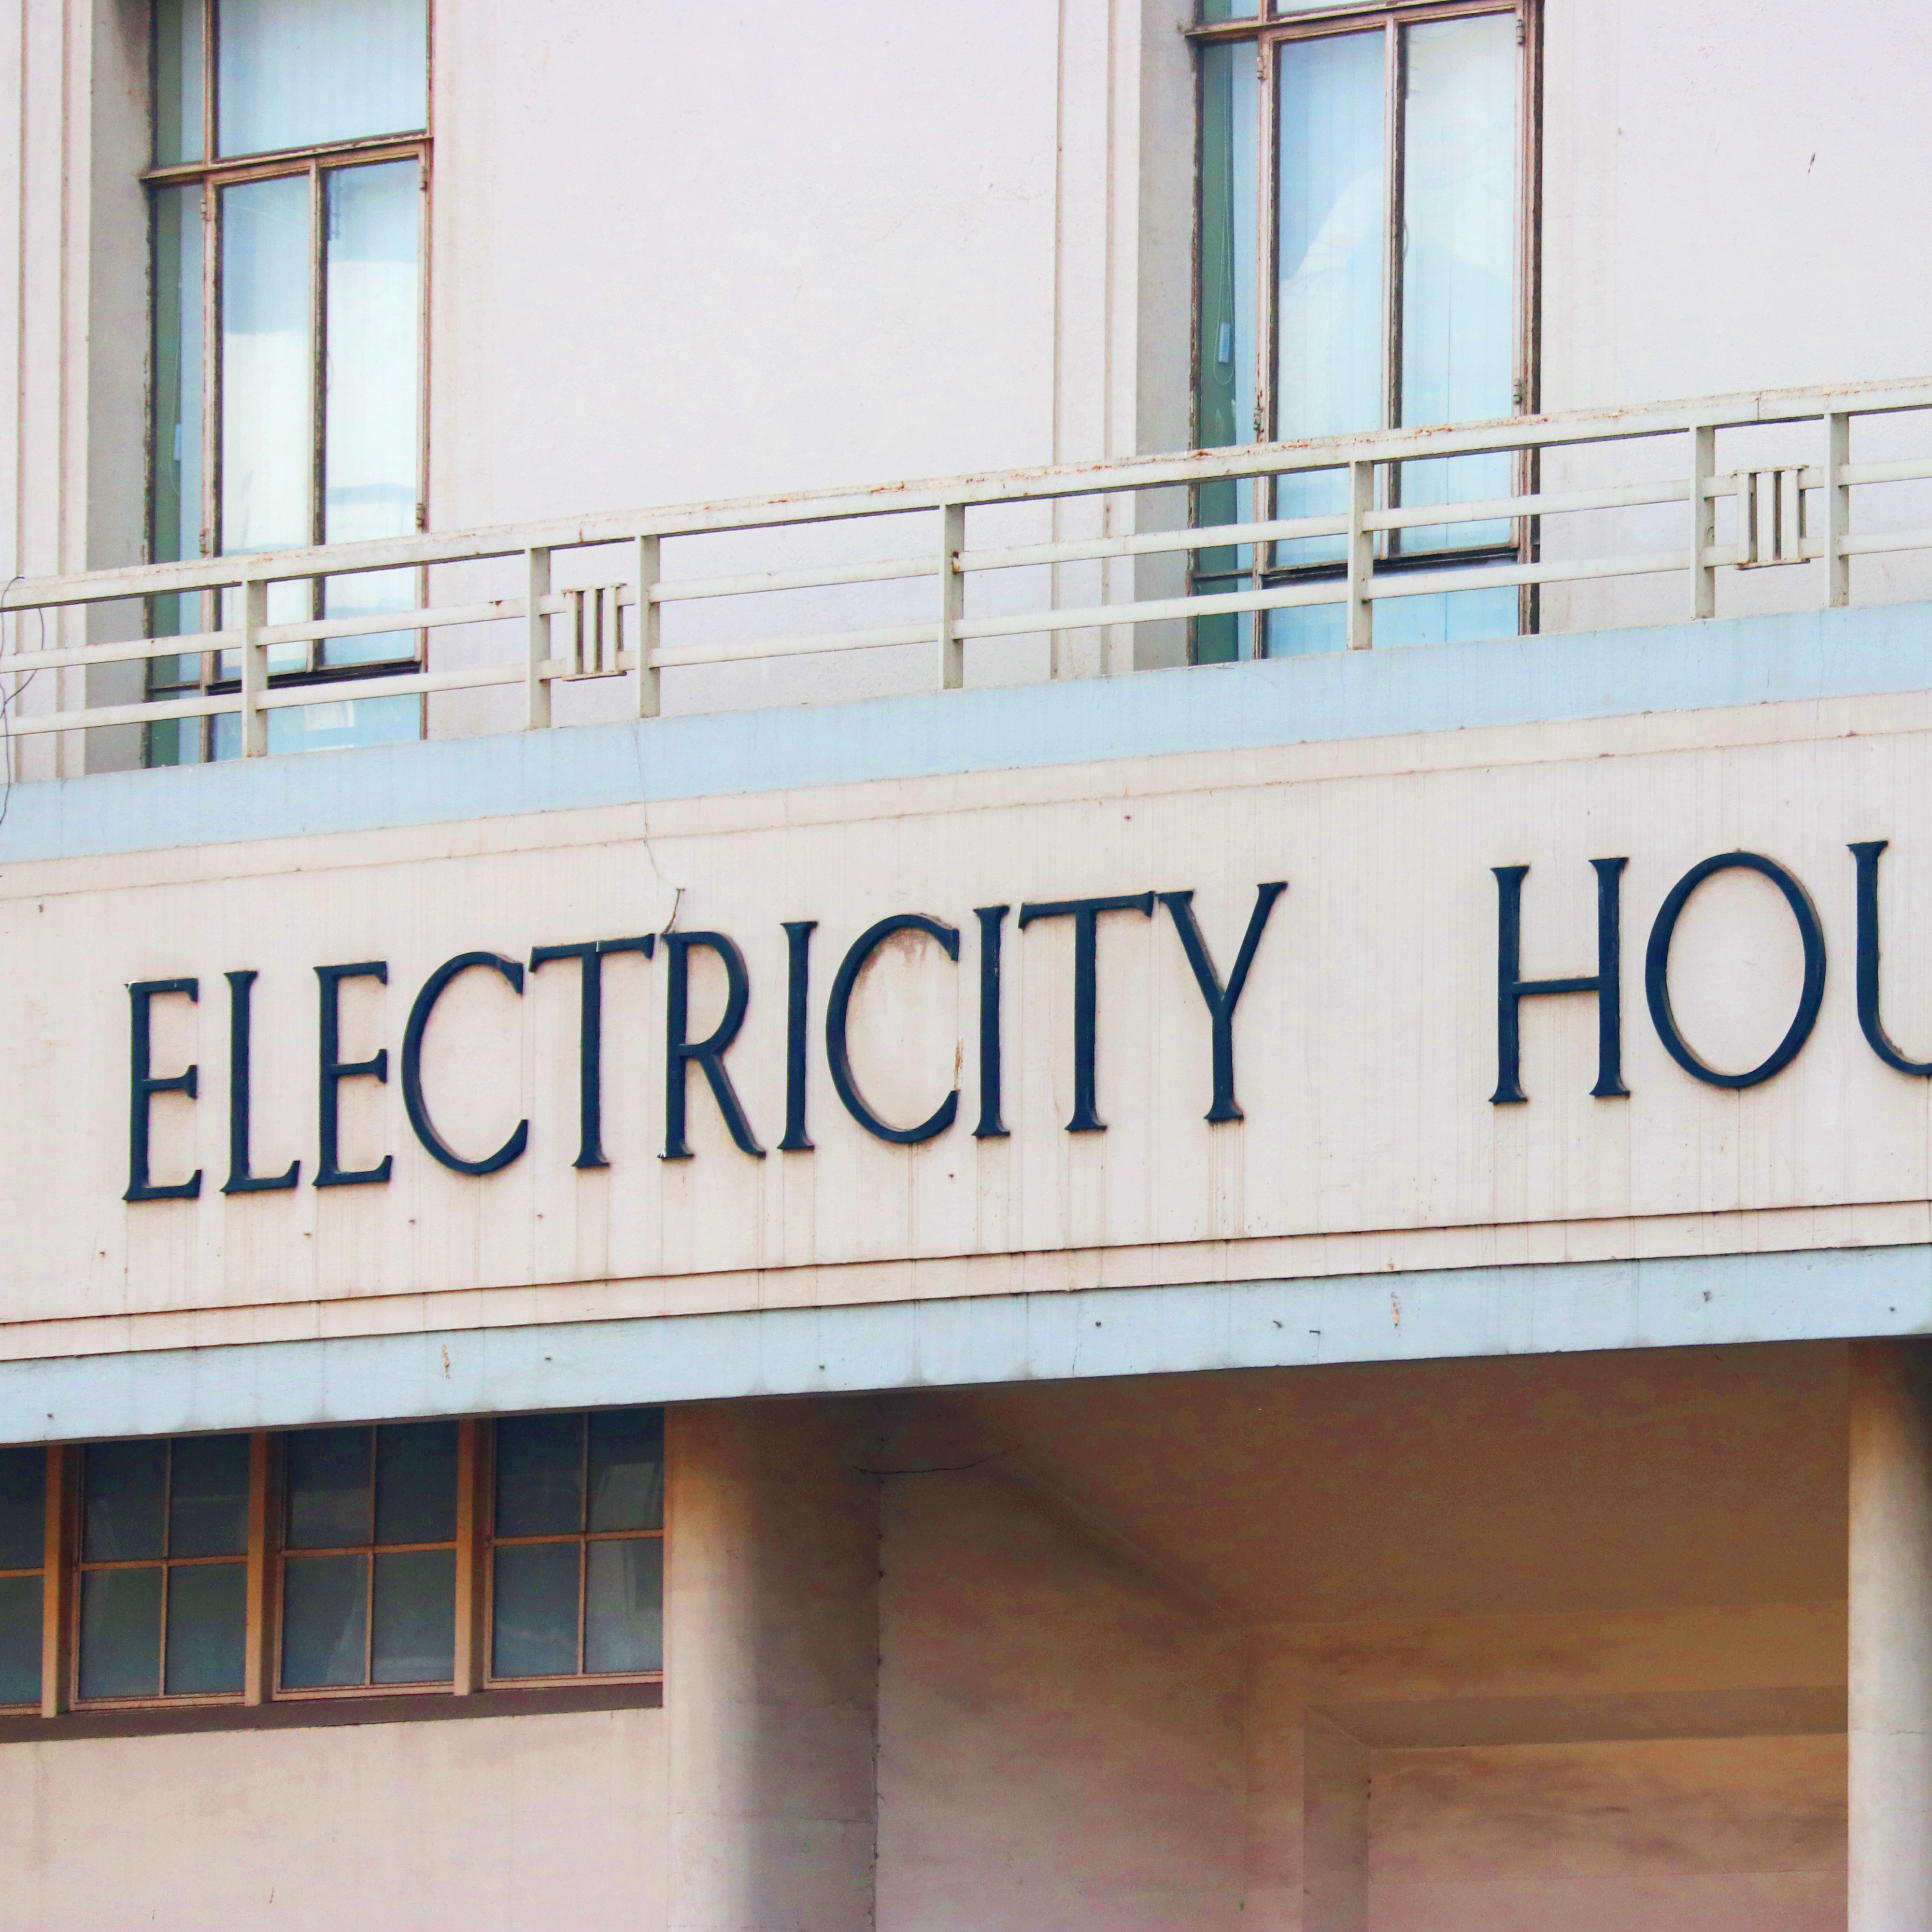 Electricity House